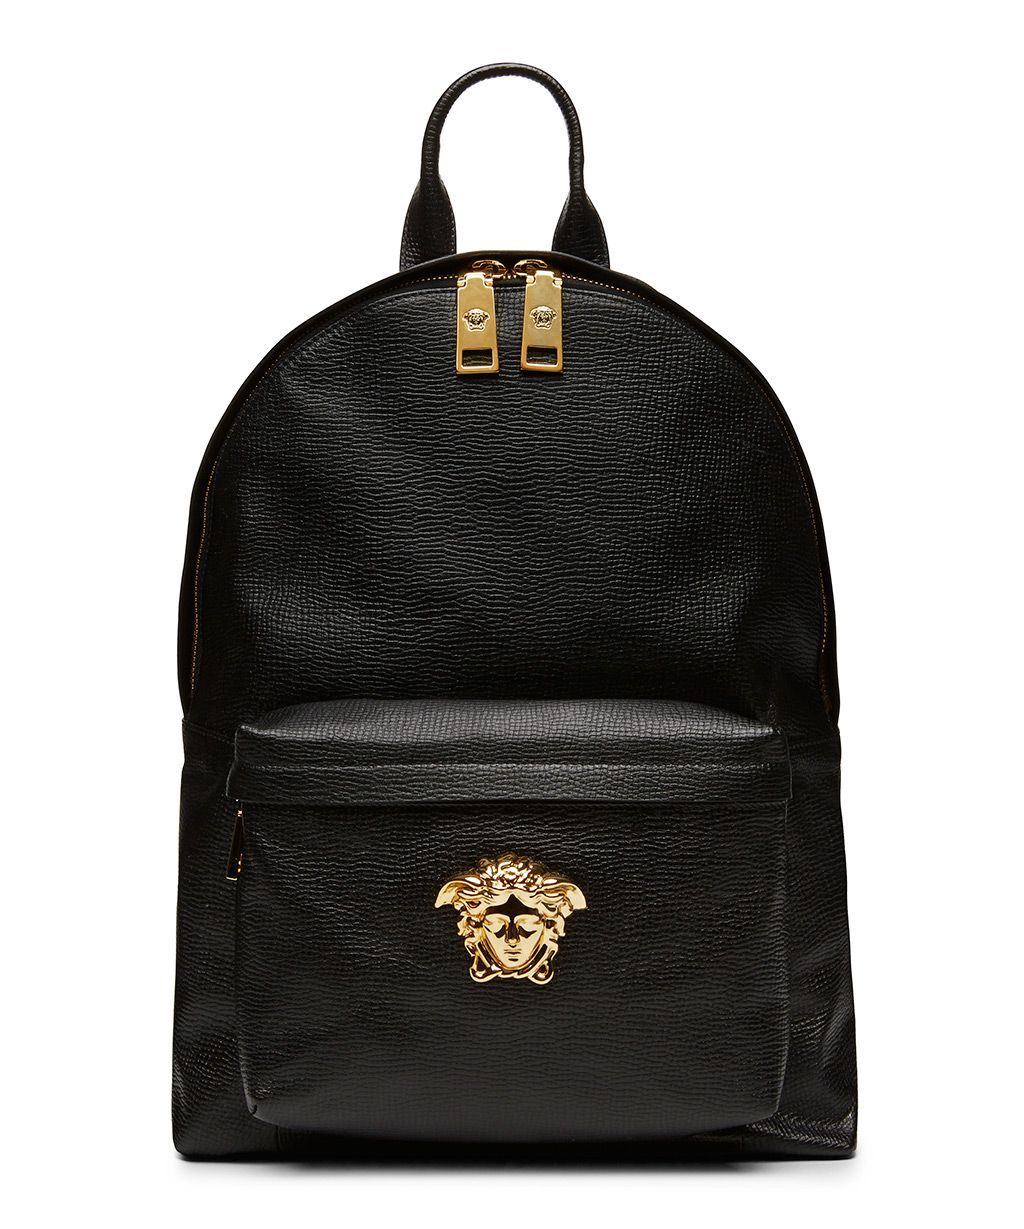 Versace Black Nappa Leather Backpack SS15VERB2 Sneakerboy